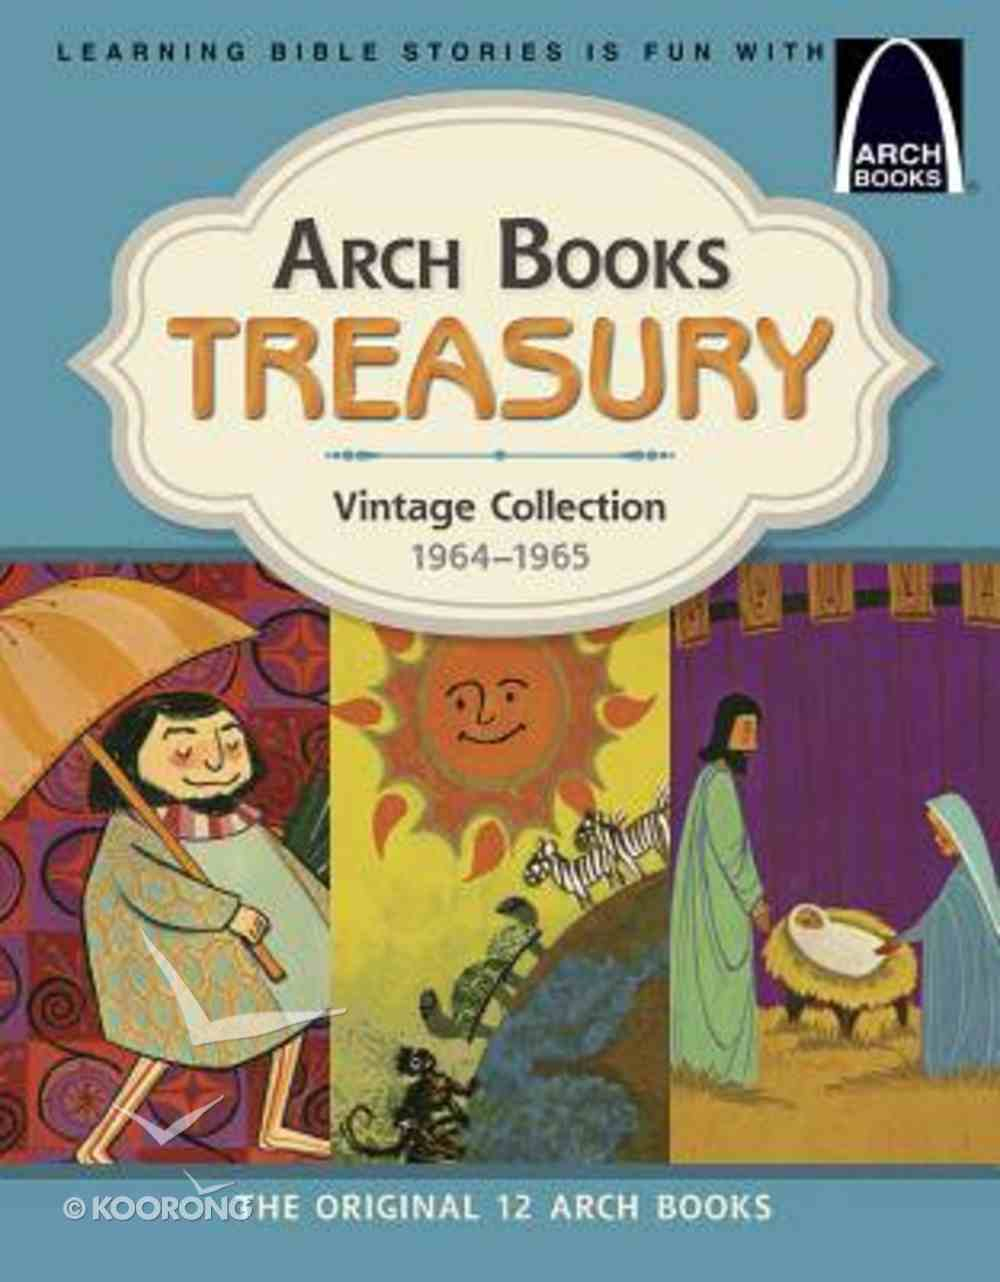 Vintage Collection, 1964-1965 (Arch Books Series) Hardback